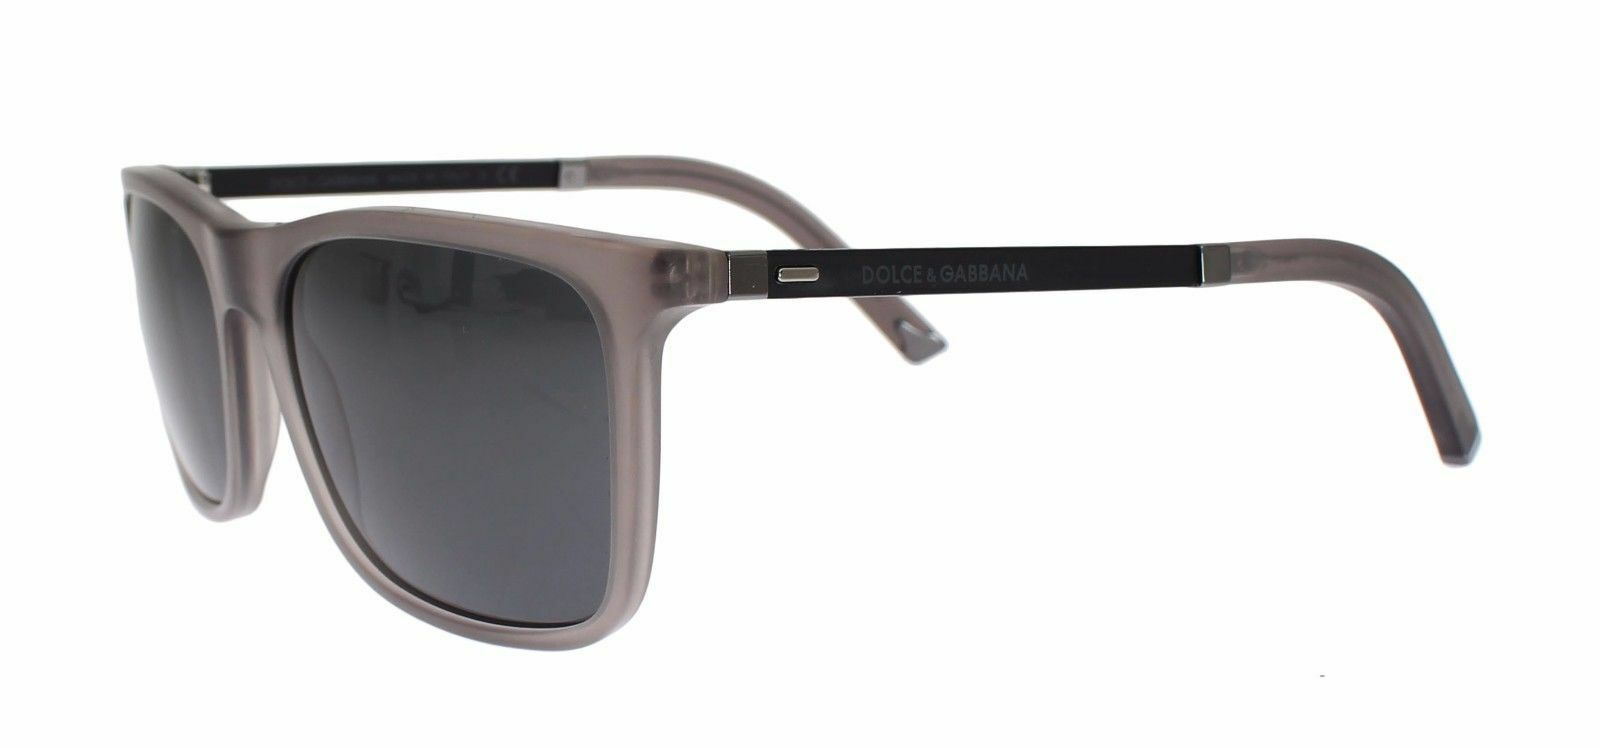 220aae7ad71 Details about DOLCE   GABBANA Gray Plastic Bassalto Col. UV Lens Women s  Sunglasses